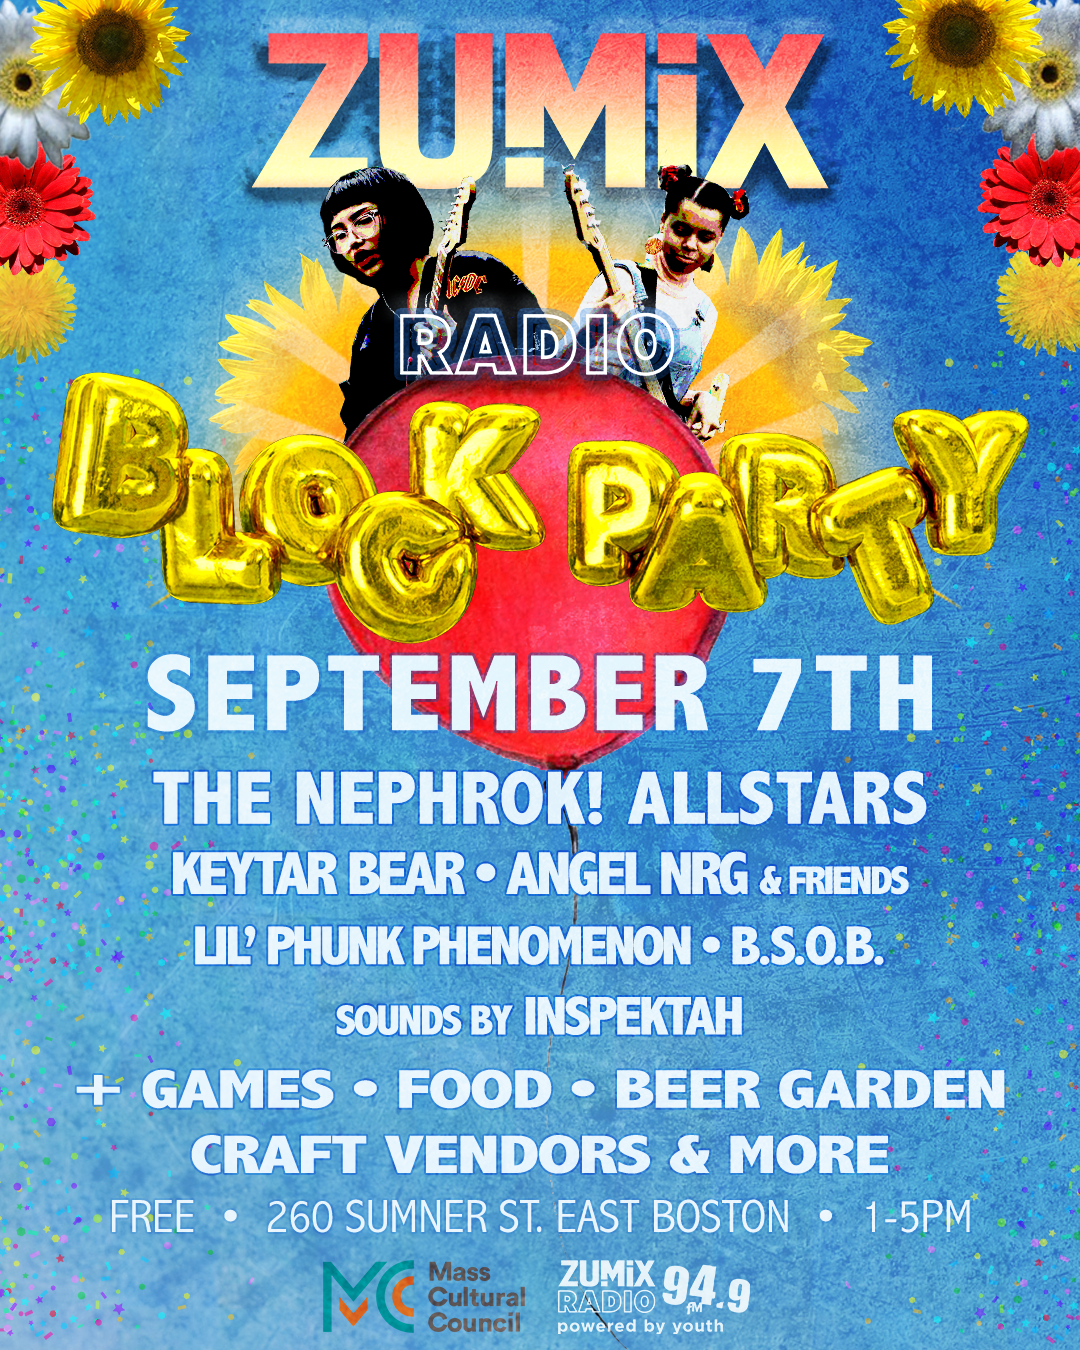 ZUMIX Radio Block Party Flyer 2019